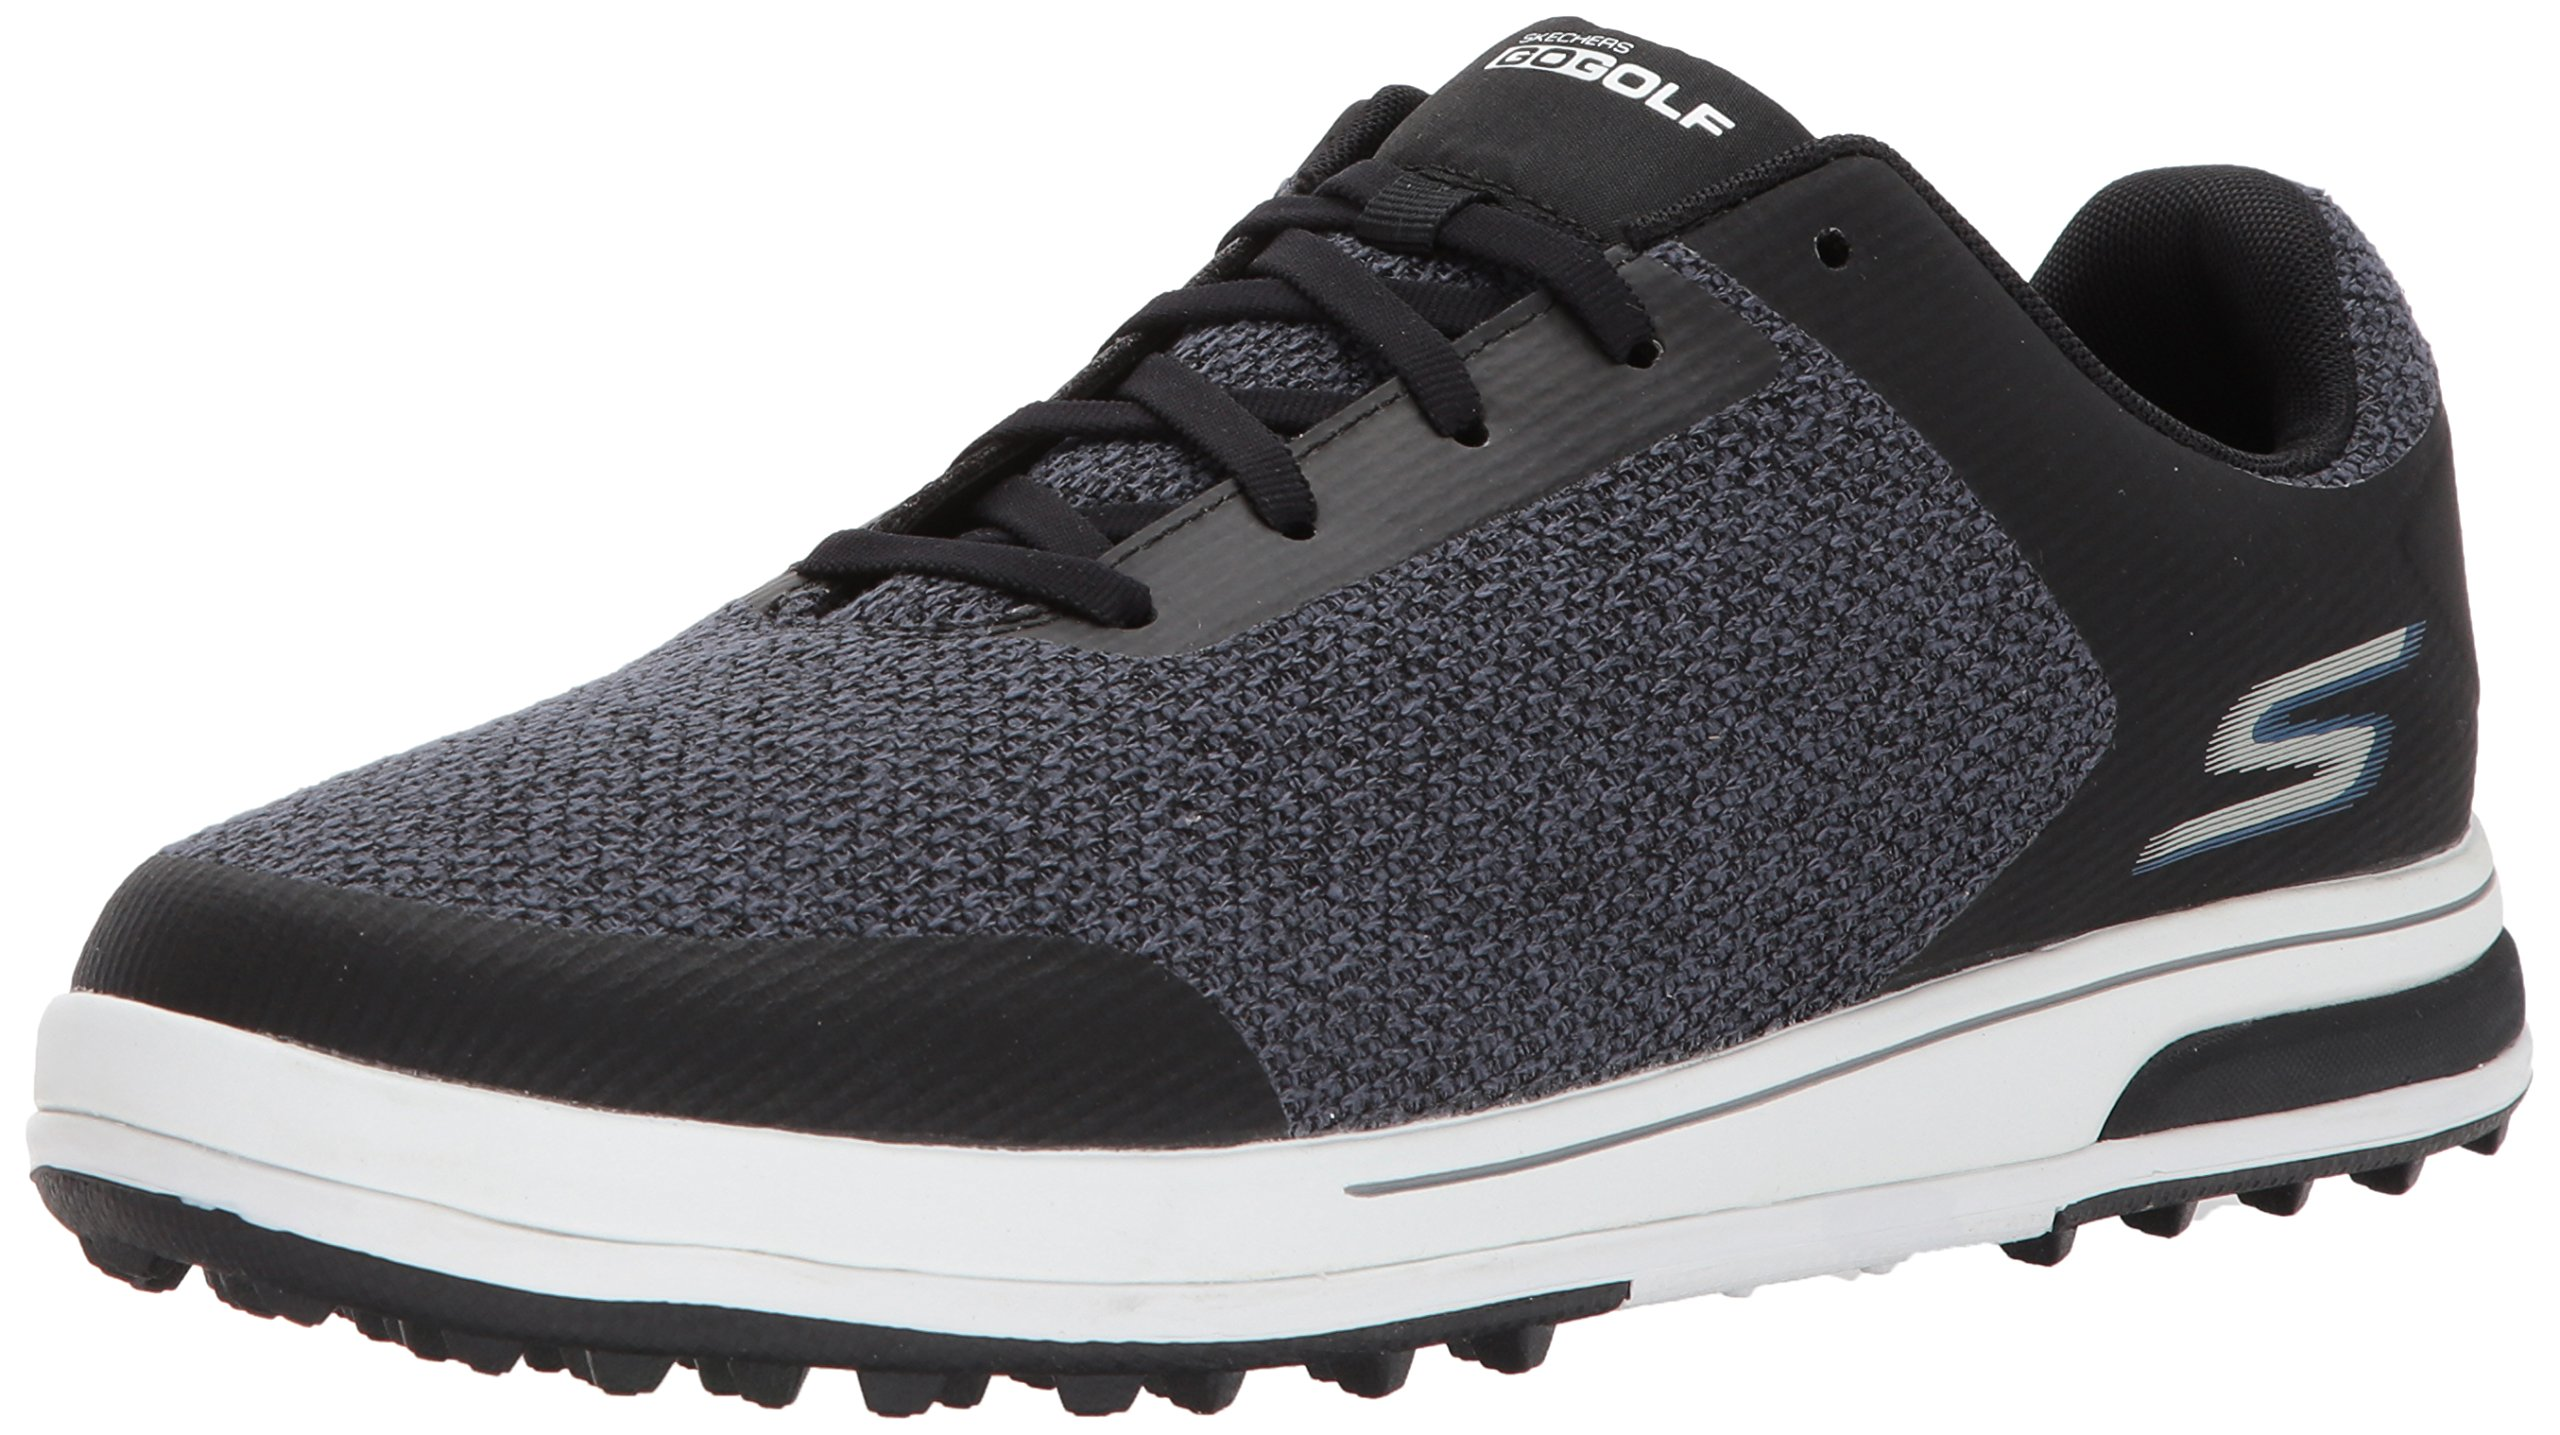 Skechers Men's Go Golf Drive 3 Golf Shoe,Black/Blue,11 M US by Skechers